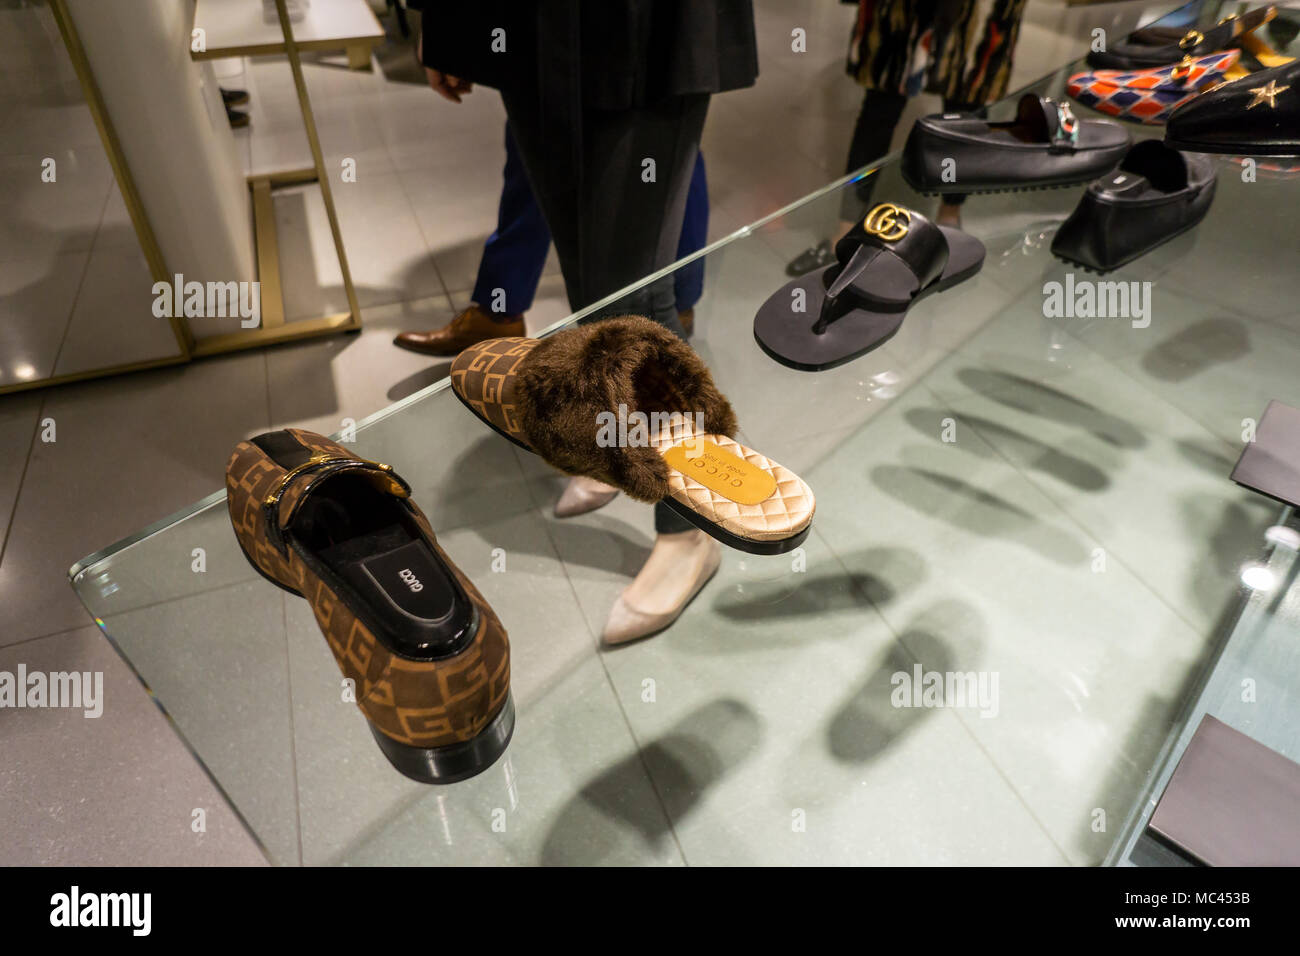 1cb4f663073 New York, USA. 12th Apr, 2018. Gucci footwear within the shoe ...